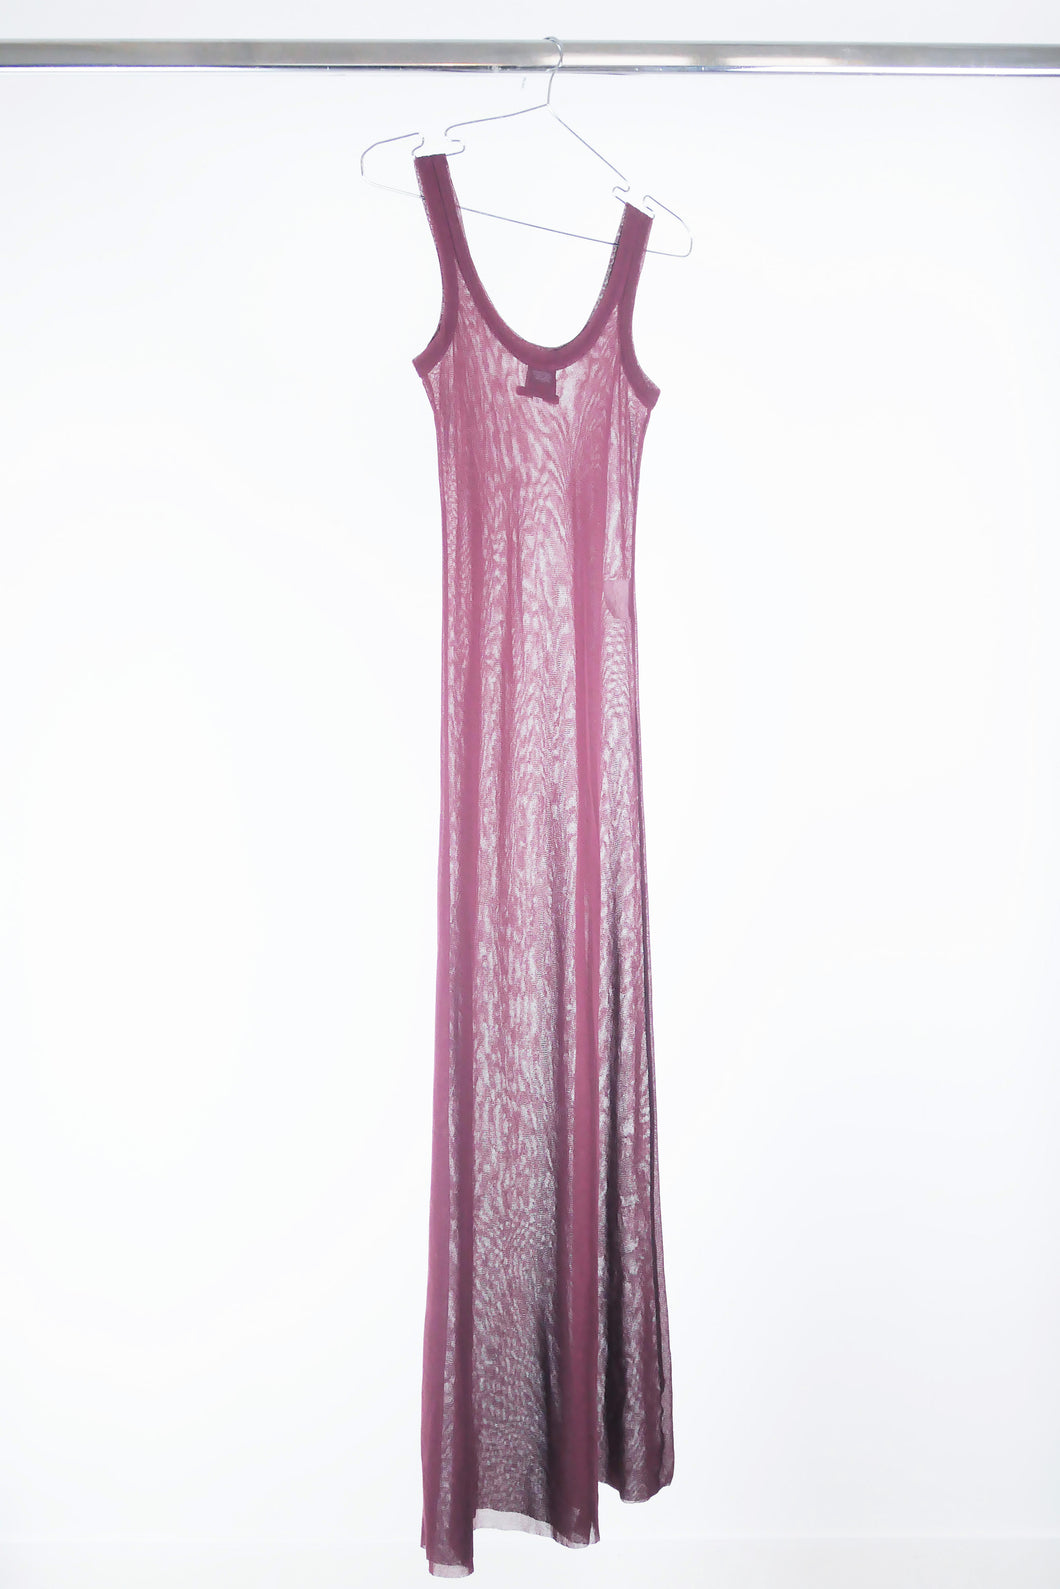 Jean Paul Gaultier sheer dress